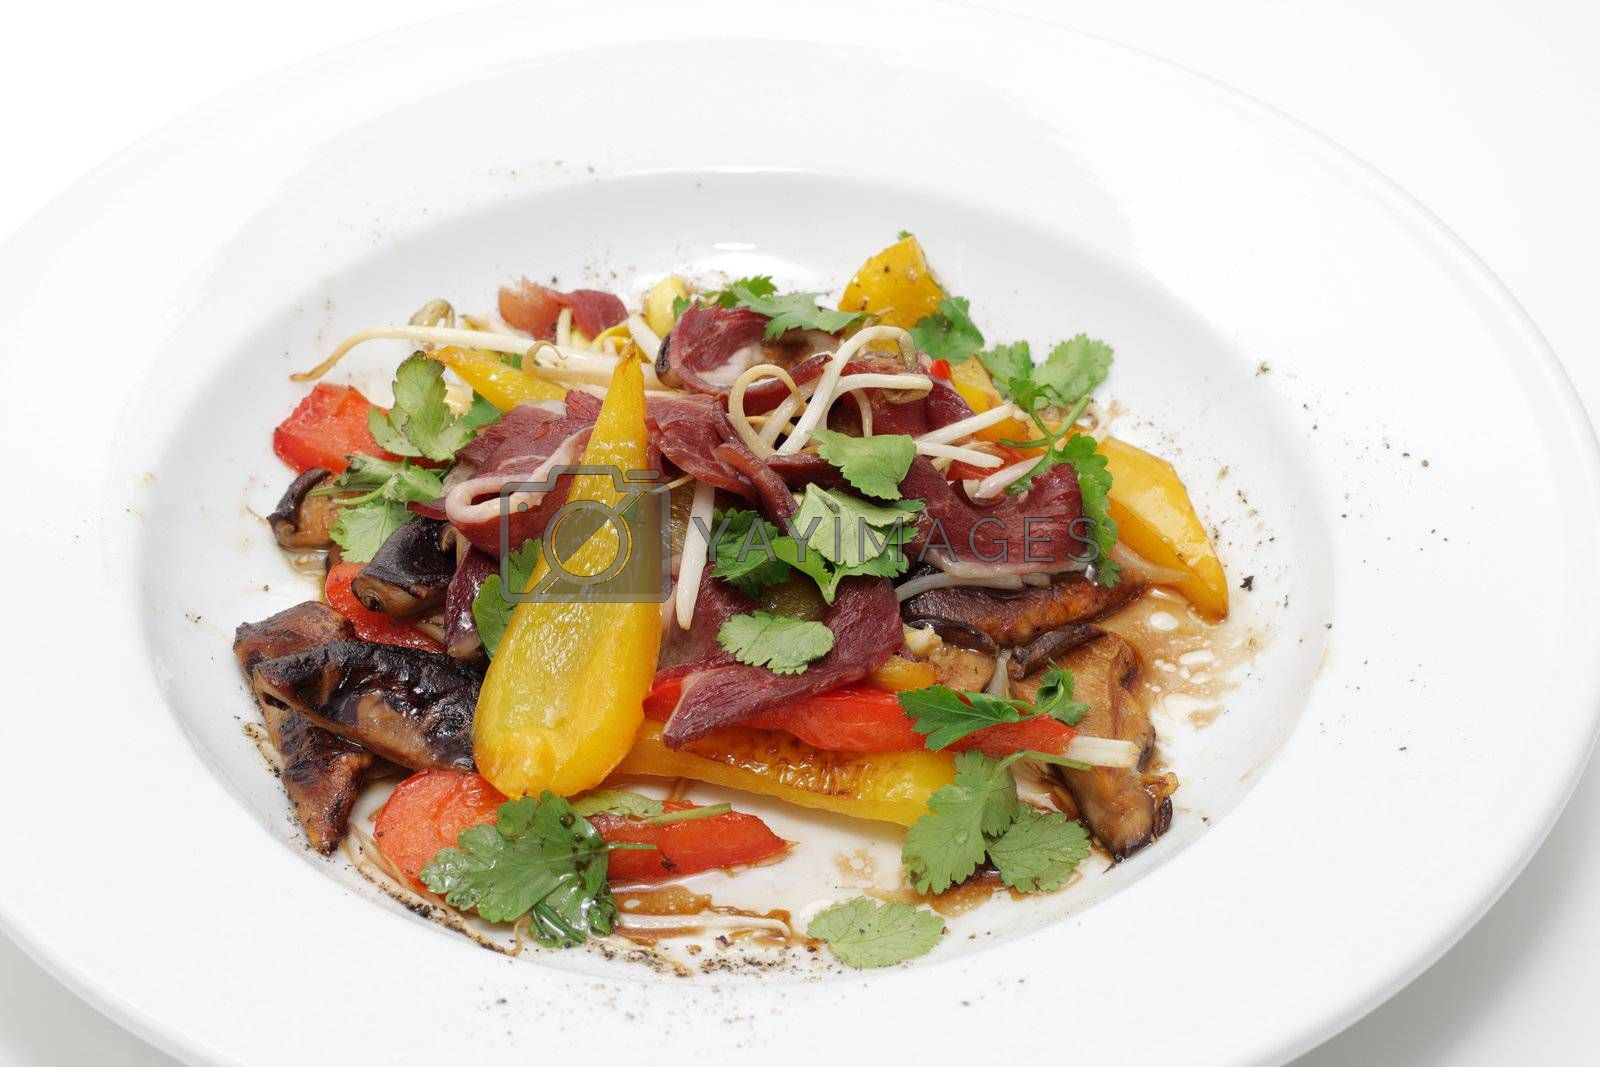 Fillet of a duck breast with a vegetables.